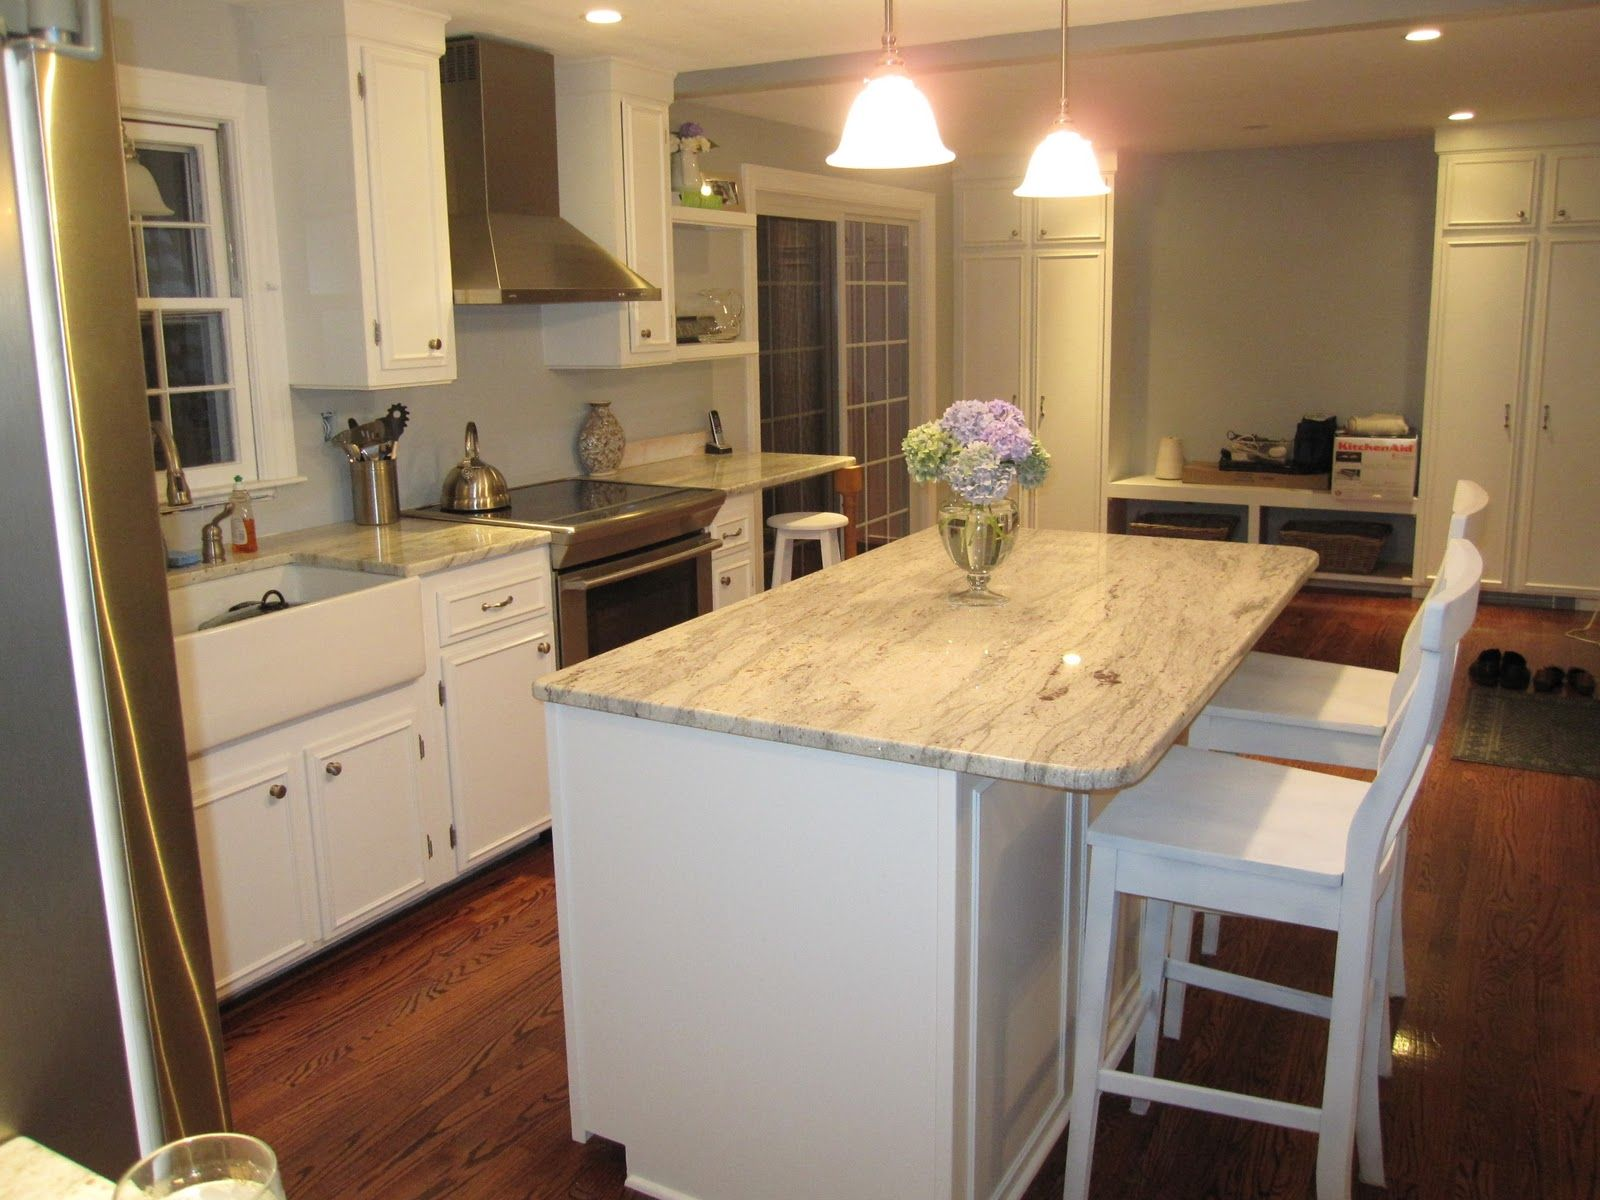 What Color Countertops Go With White Cabinets White Cabinets With Granite Countertops Diy Kitchen